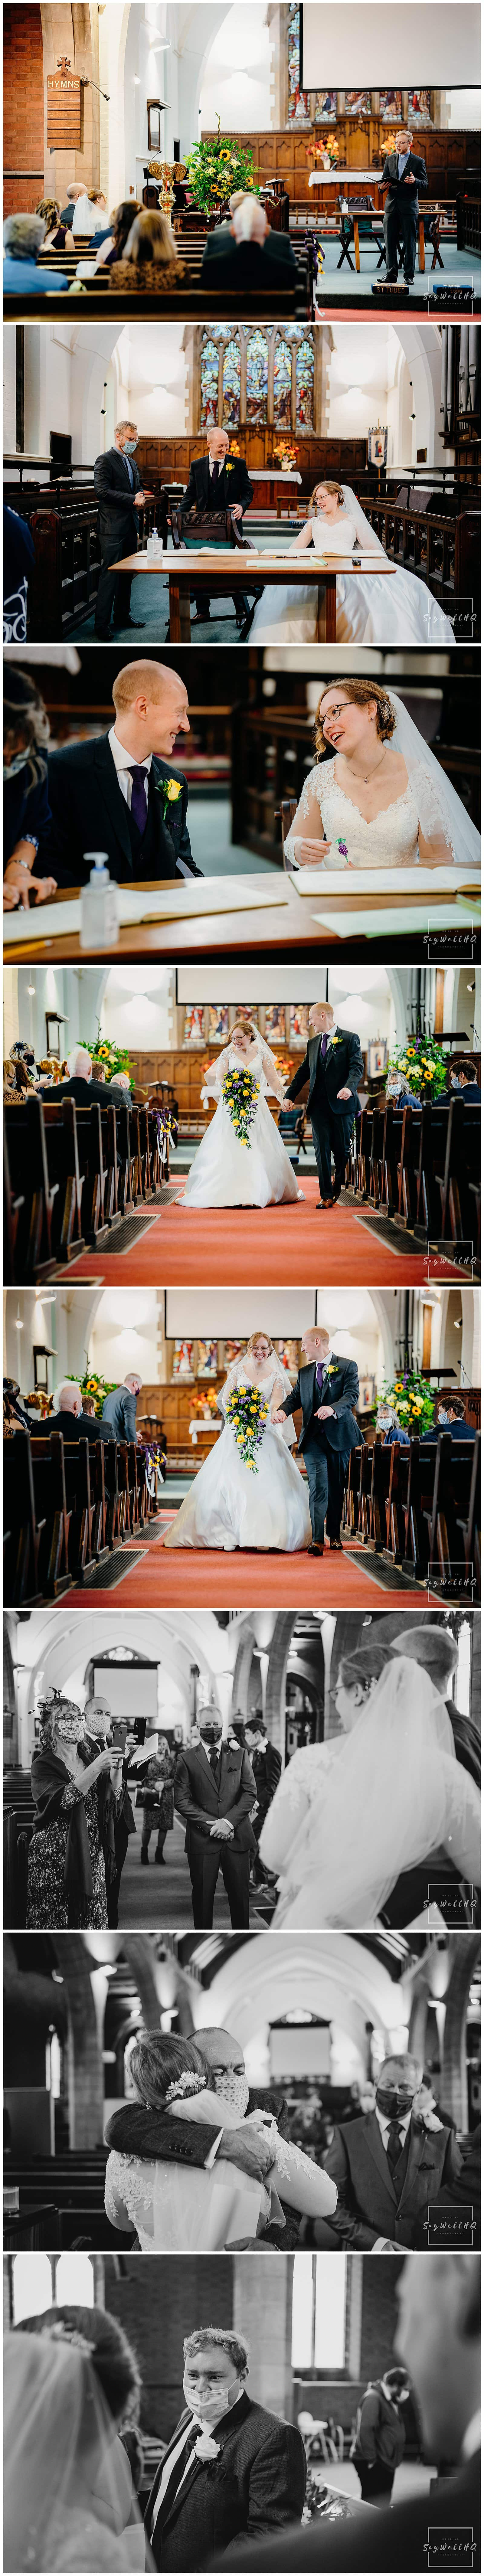 Bride and groom sign the wedding register during the micro wedding at St Judes Church in Mapperley Nottingham